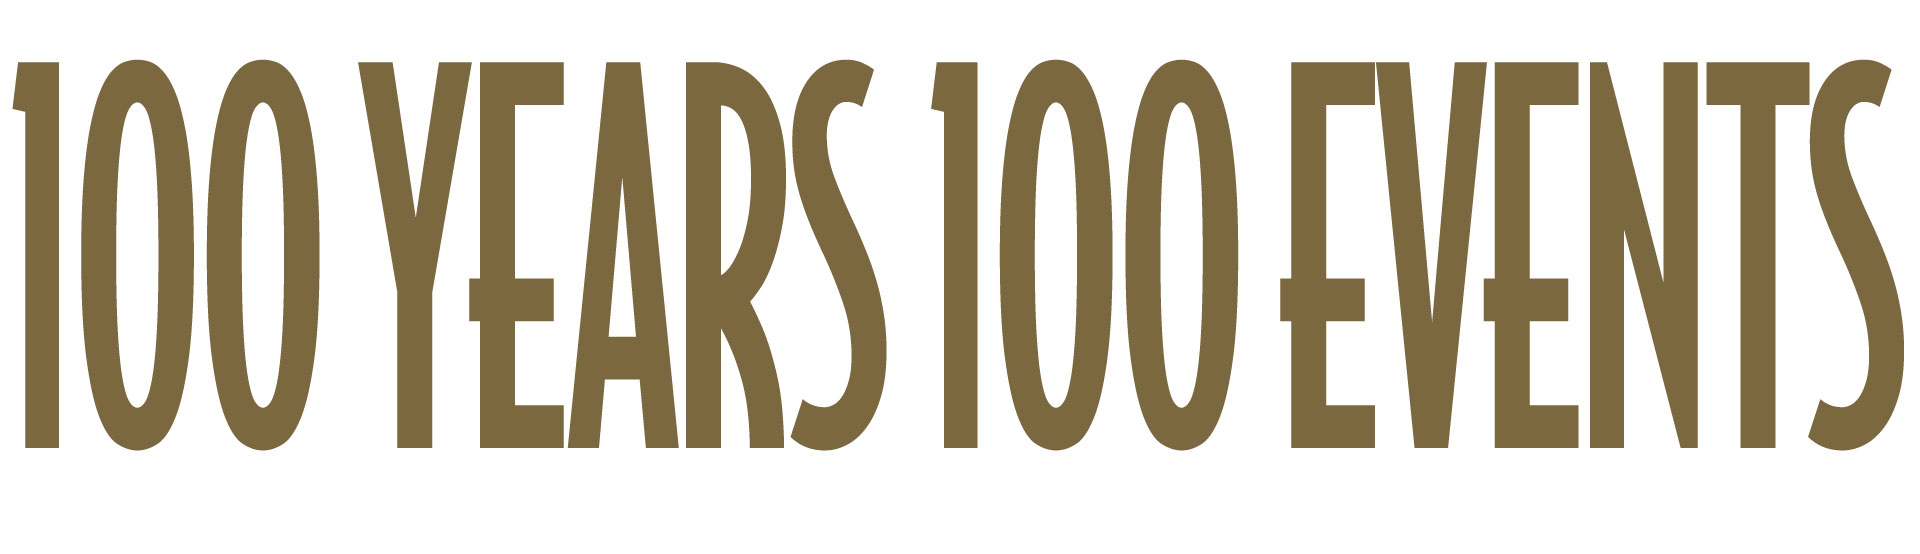 100 Years, 100 Events